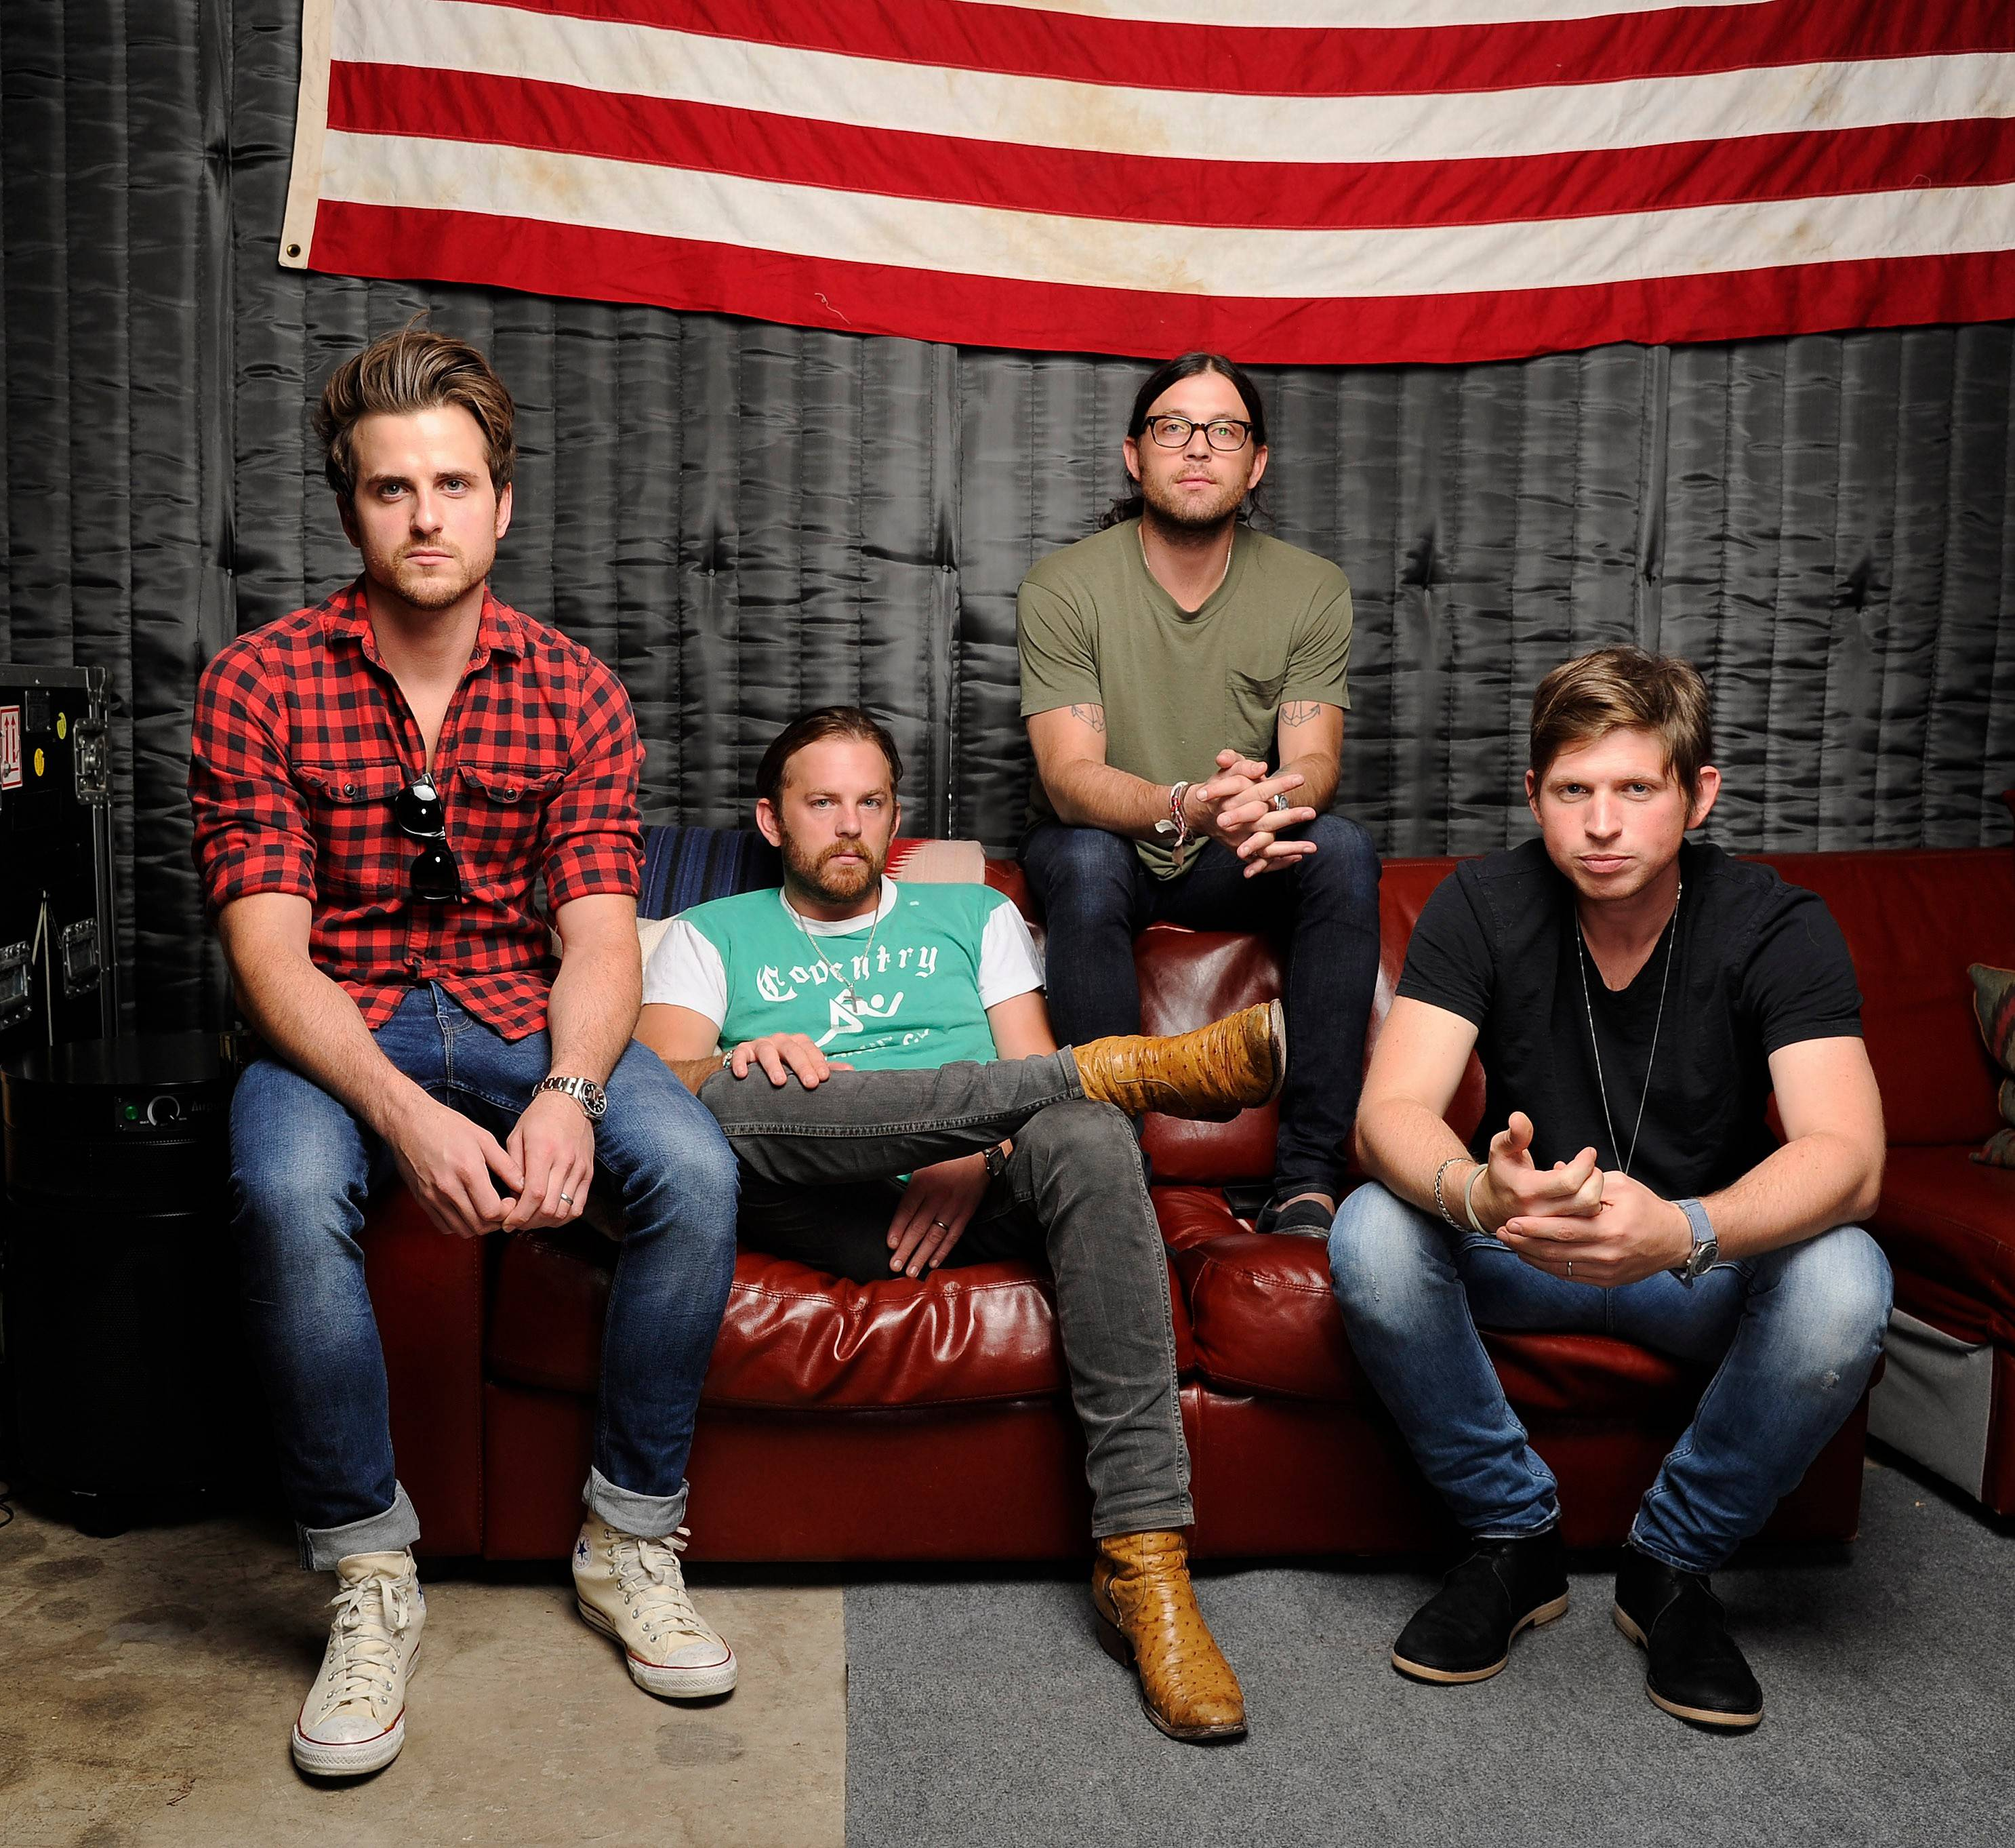 King of Leon -- Jared Followill, left, Caleb Followill, Nathan Followill and Matthew Followill -- will head to Chicago this summer for Lollapalooza.